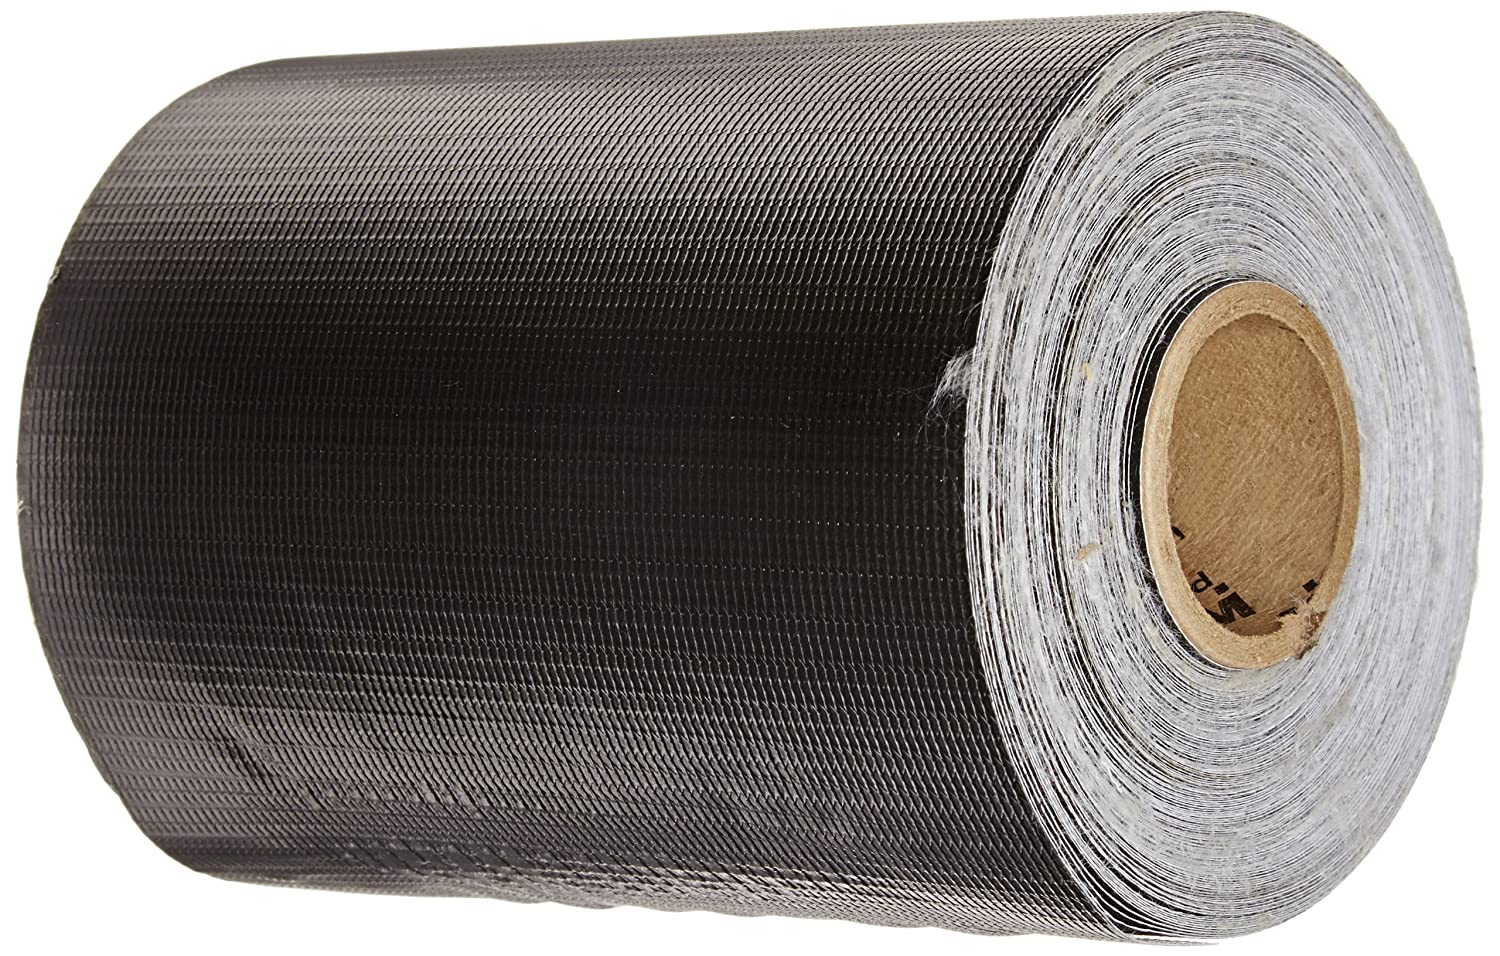 100 Length x 6 Width Mutual 15800 3-Ply Harlequin Aerial Paneling Material Black//White